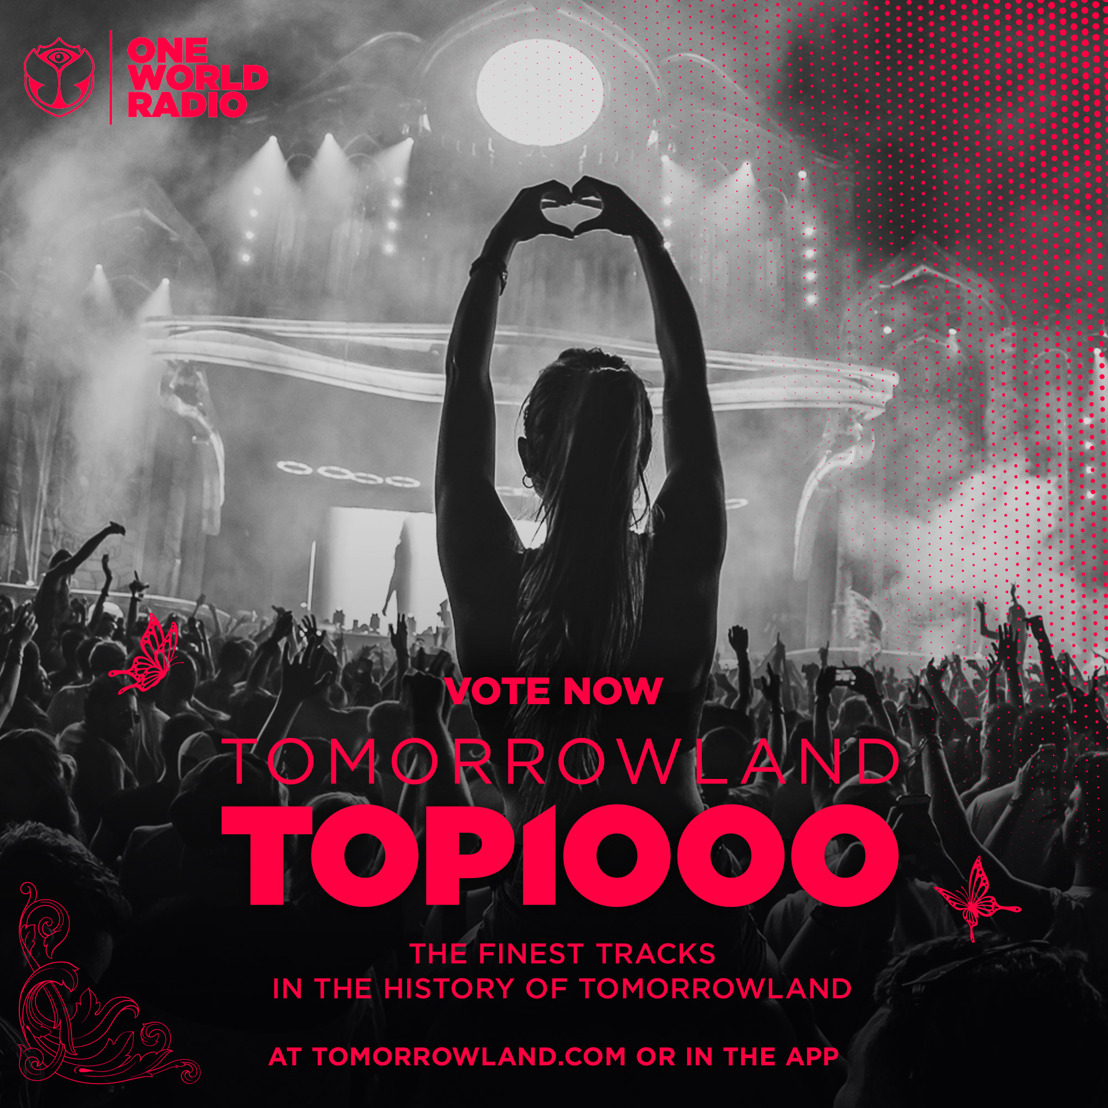 Tomorrowland - One World Radio presents the Tomorrowland Top 1000, celebrating the finest tracks in the history of Tomorrowland